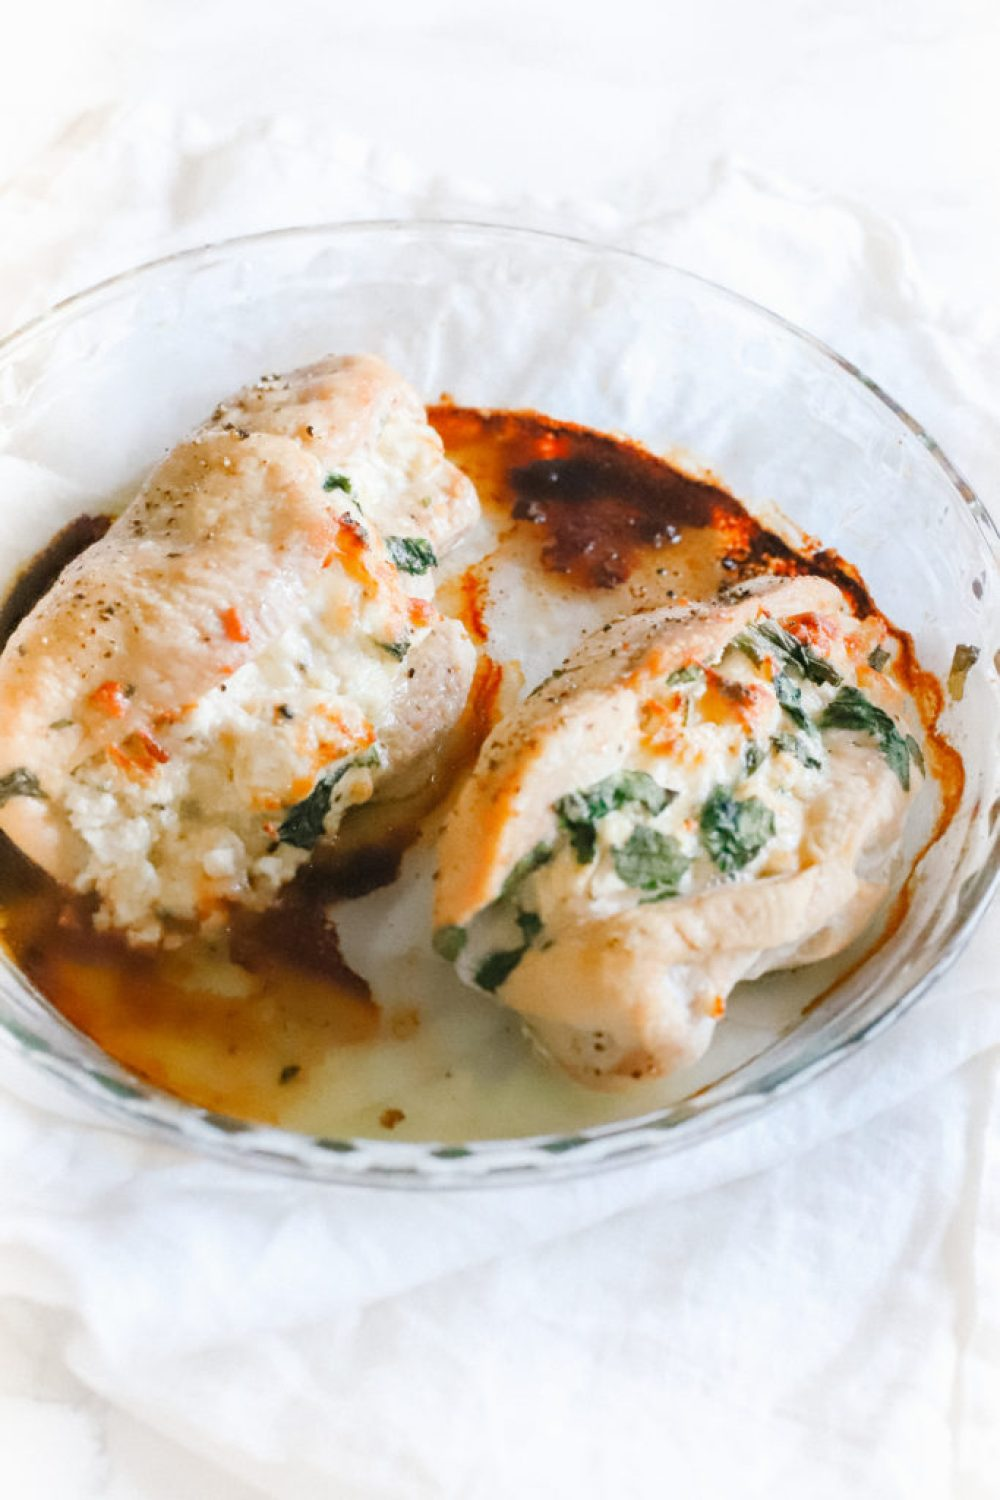 Spinach and cream cheese stuffed chicken is an easy dinner recipe that's gluten-free, low carb and keto friendly! Oven baked, simple and deliciously seasoned. Keto Dinner Recipes | Easy Chicken Recipe | Low Carb | Ketogenic | Gluten-Free | Baked Stuffed Chicken | Spinach Stuffed Chicken | Stuffed Chicken Breasts | Baked Stuffed Chicken | Main Course | Weight Loss | Seasoned Chicken | Filling | Pocket |